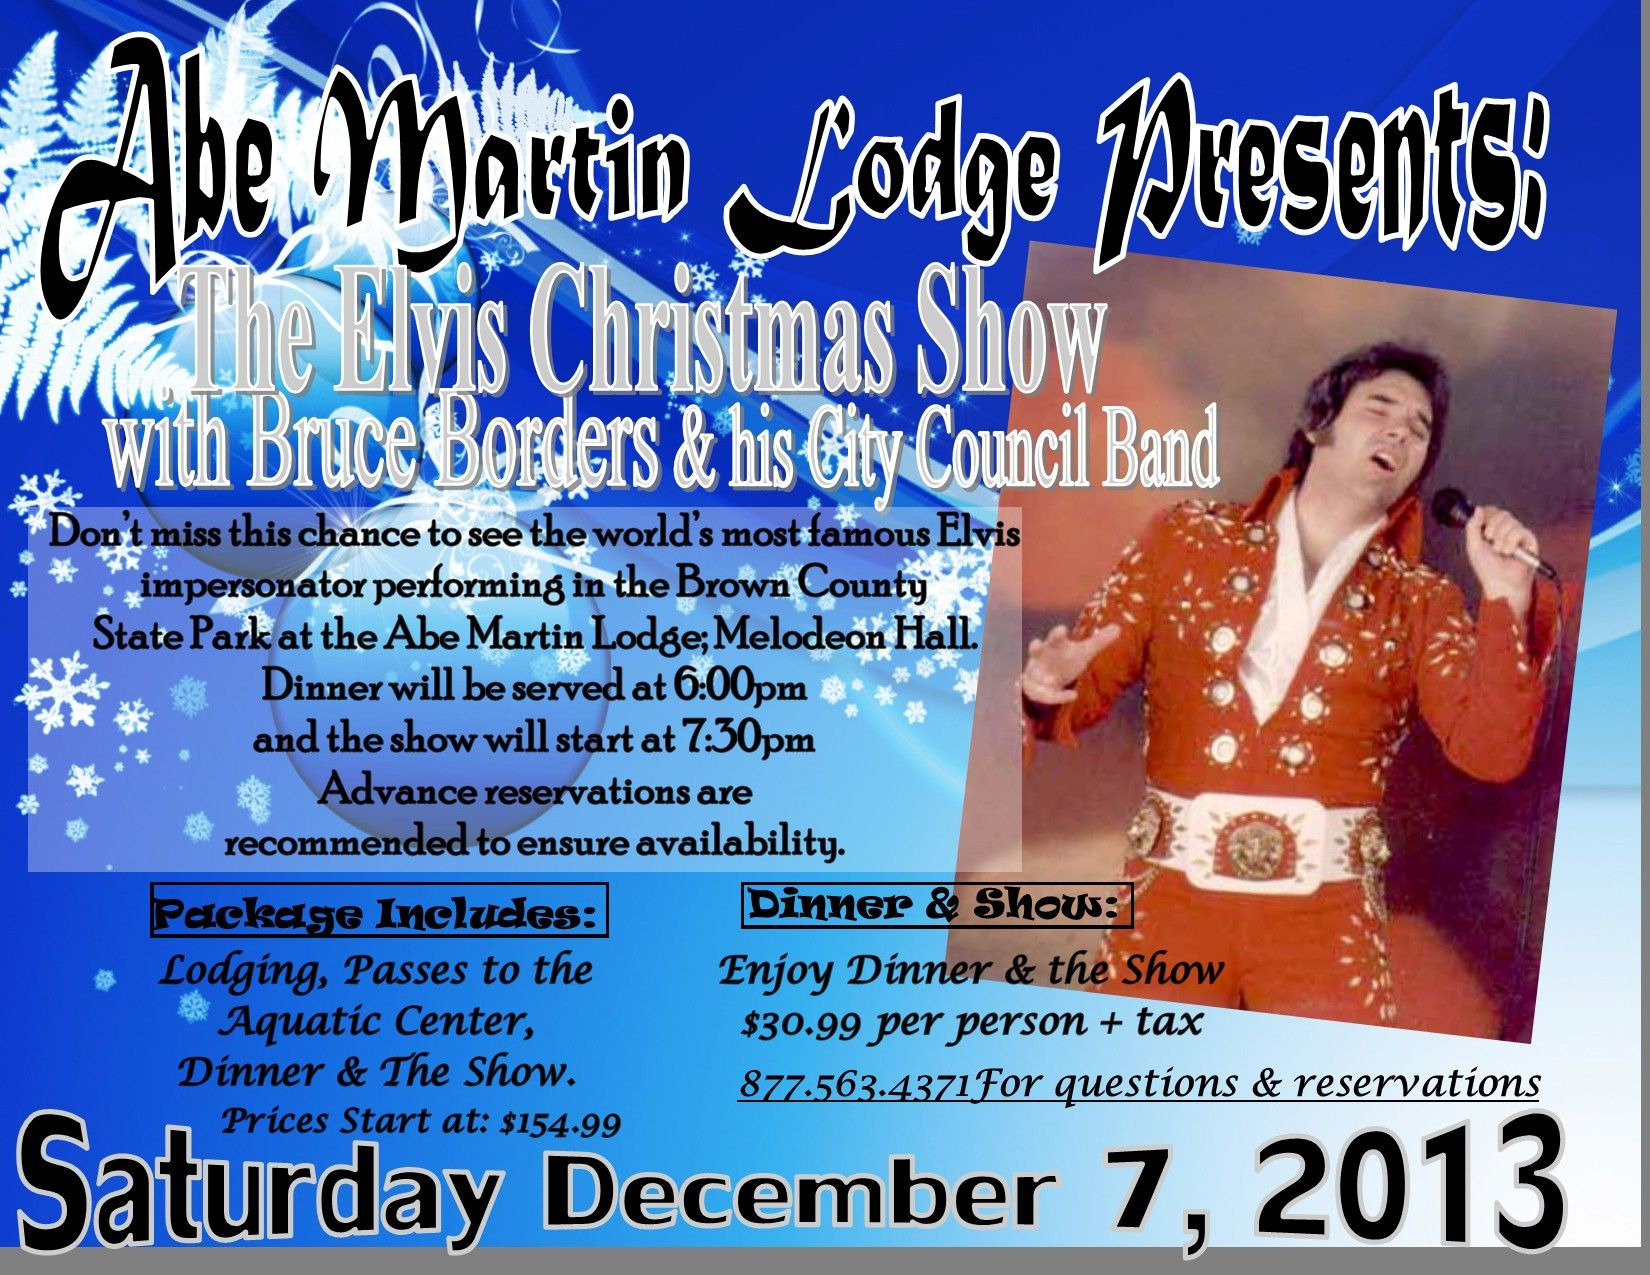 Abe Martin Lodge Presents - ELVIS CHRISTMAS SHOW - December 7, 2013 - Located in the Brown County State Park - Event will be taking place in our Melodeon Hall #browncounty #elvischristmas #abemartinlodge #elvis #impersonator